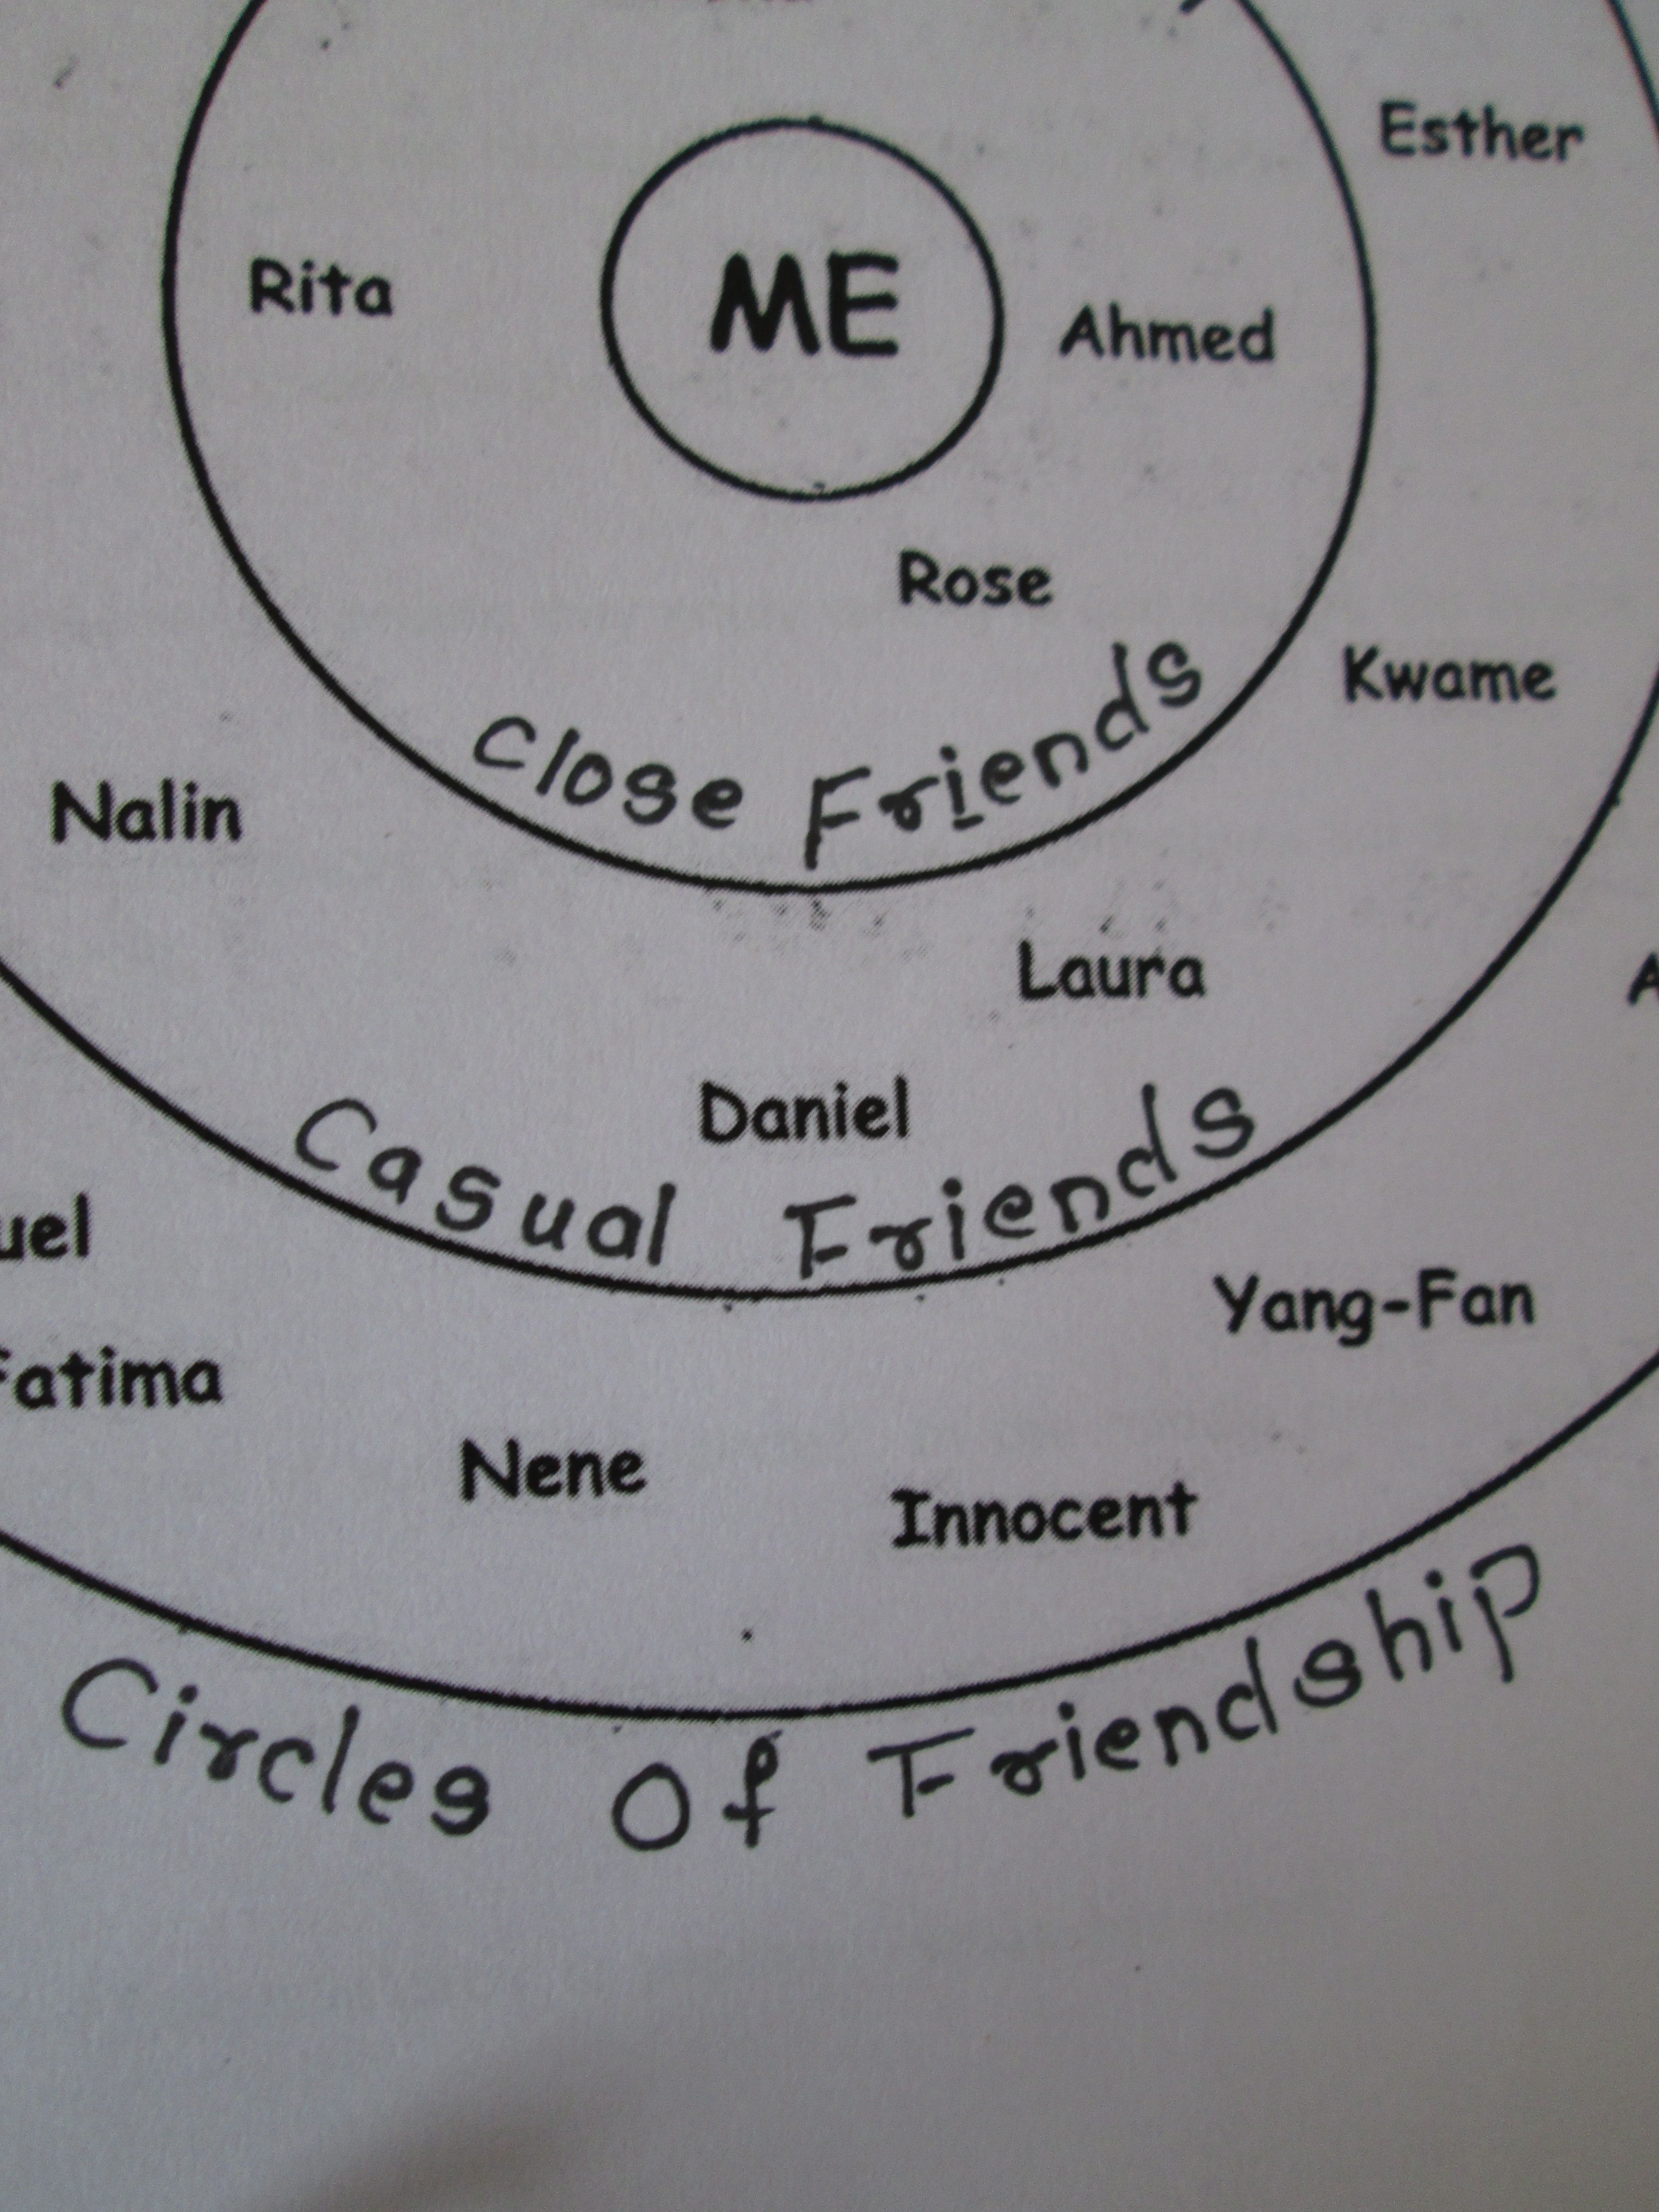 Teaching Teenagers About Different Friendship Groups